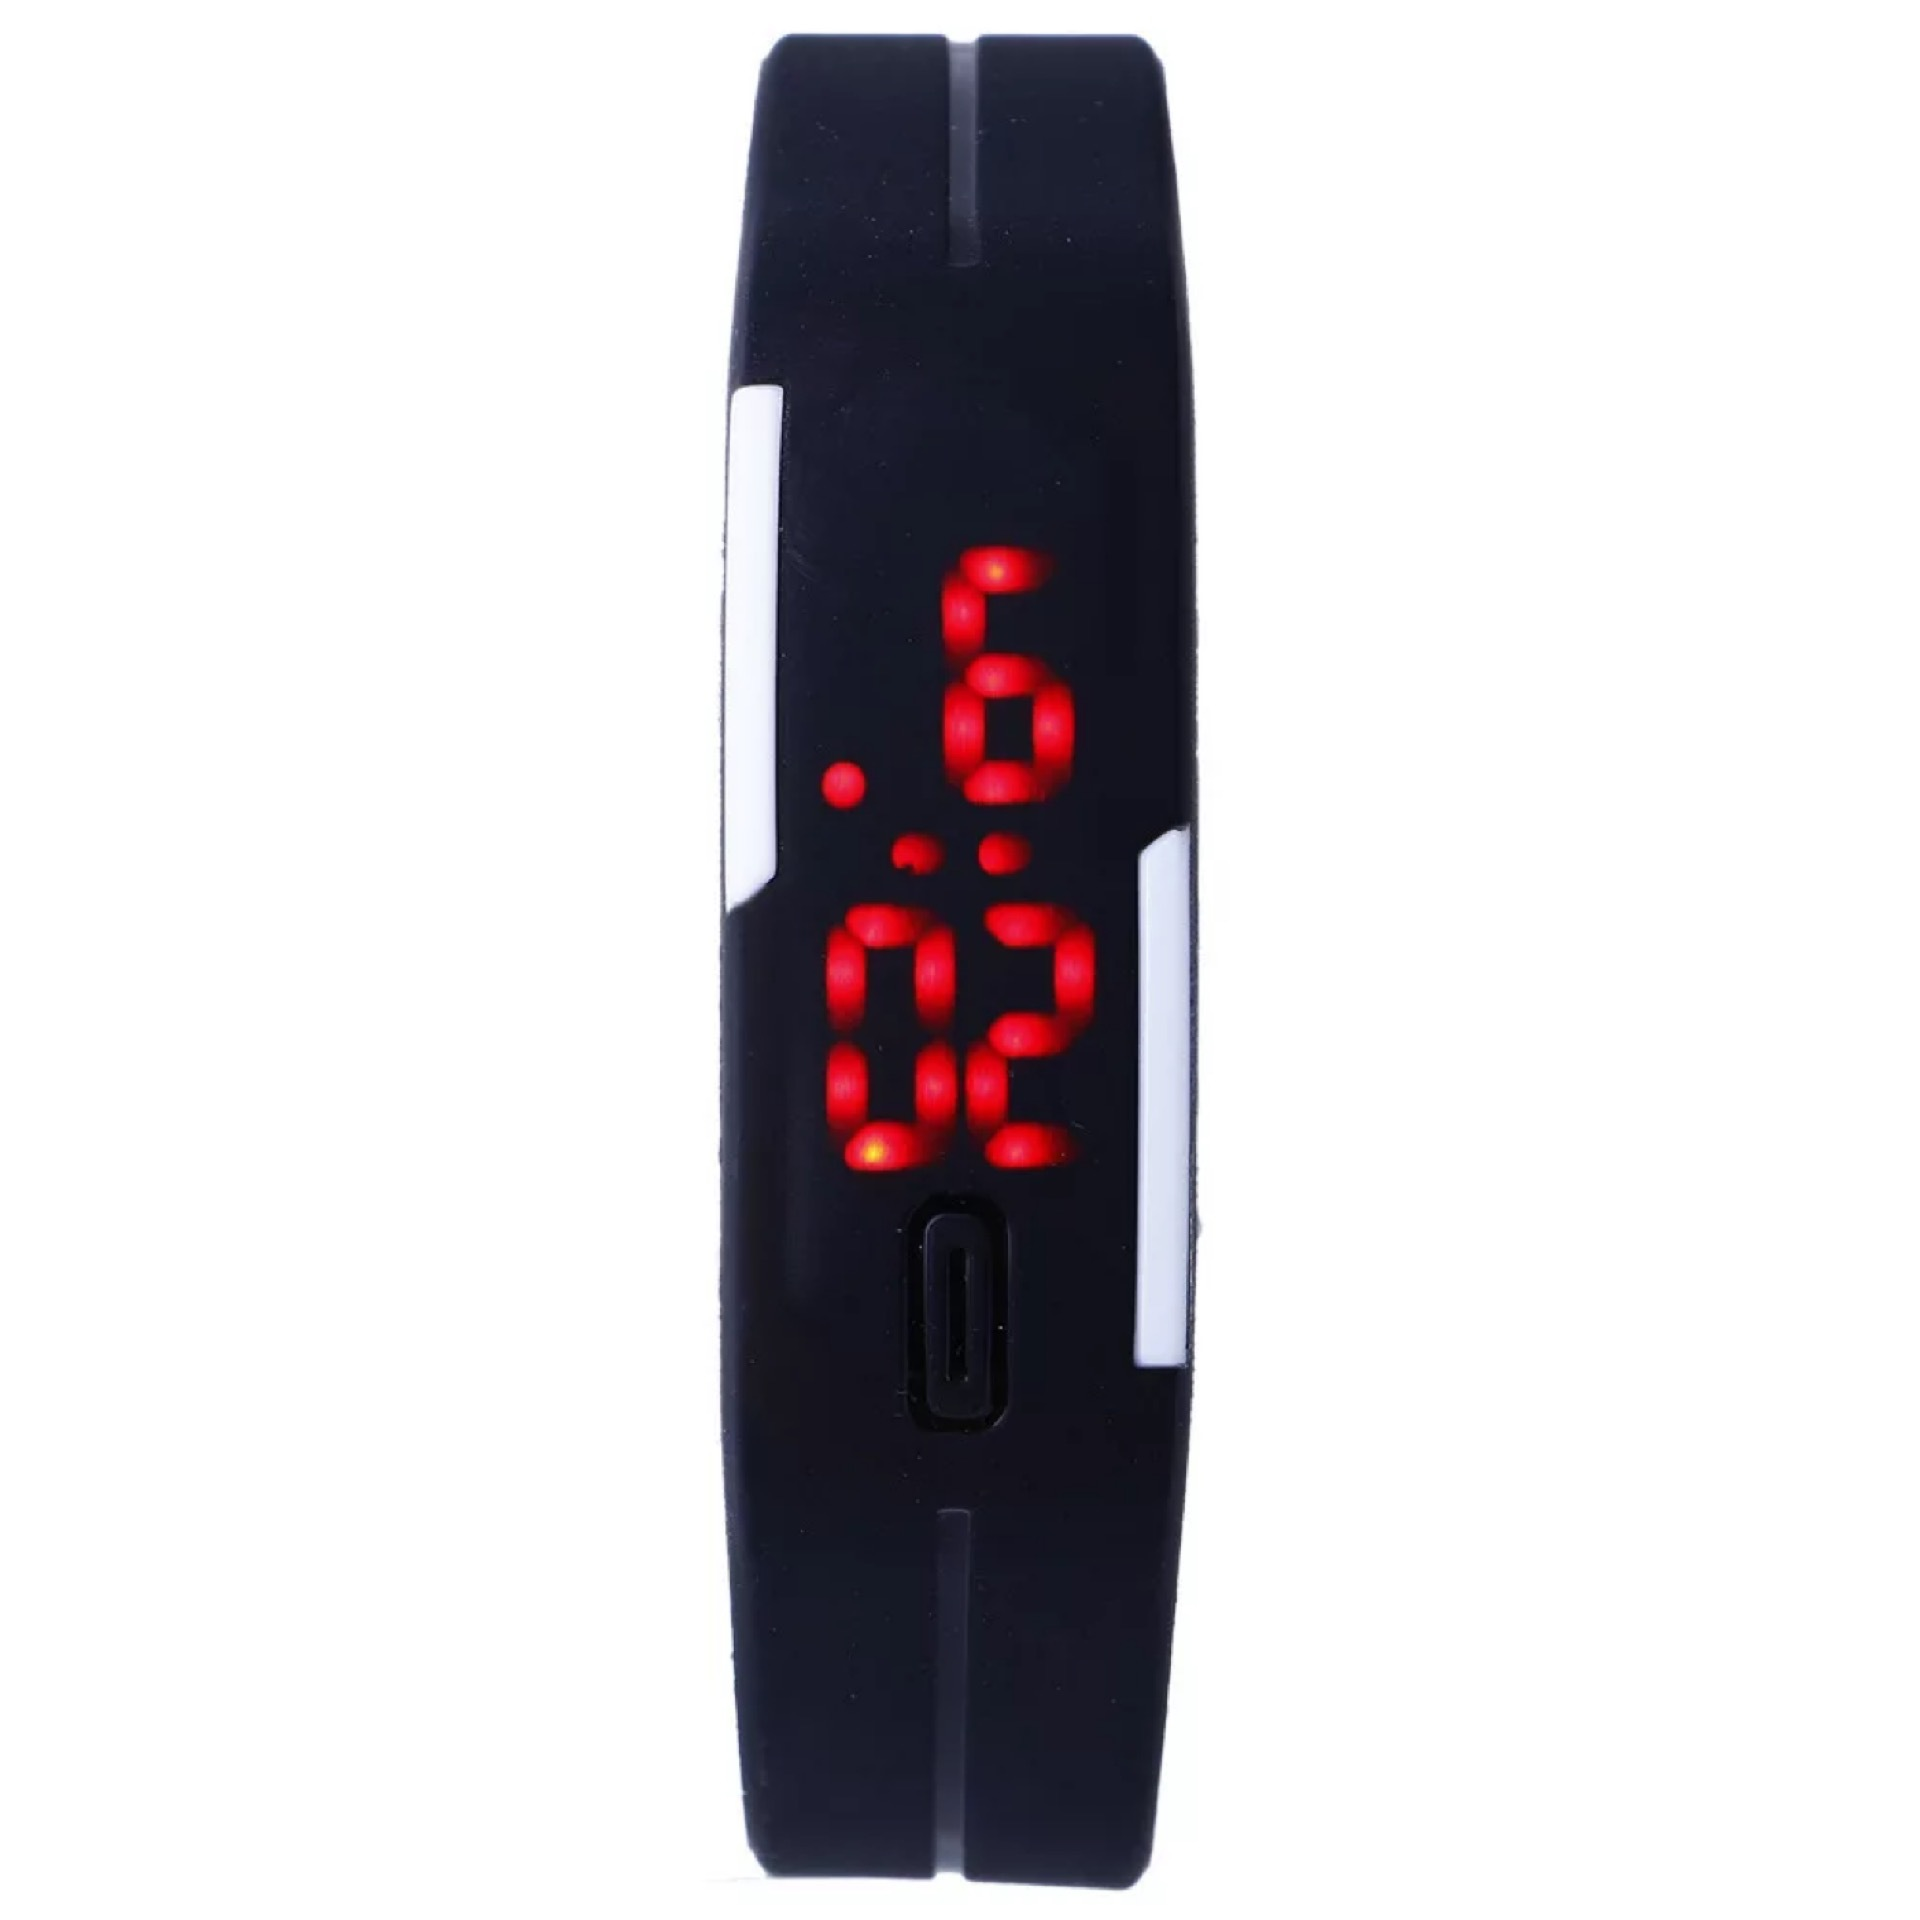 Color Screen Waterproof Smart Band with Heart Rate Monitor Wristband Bracelet Blood Pressure